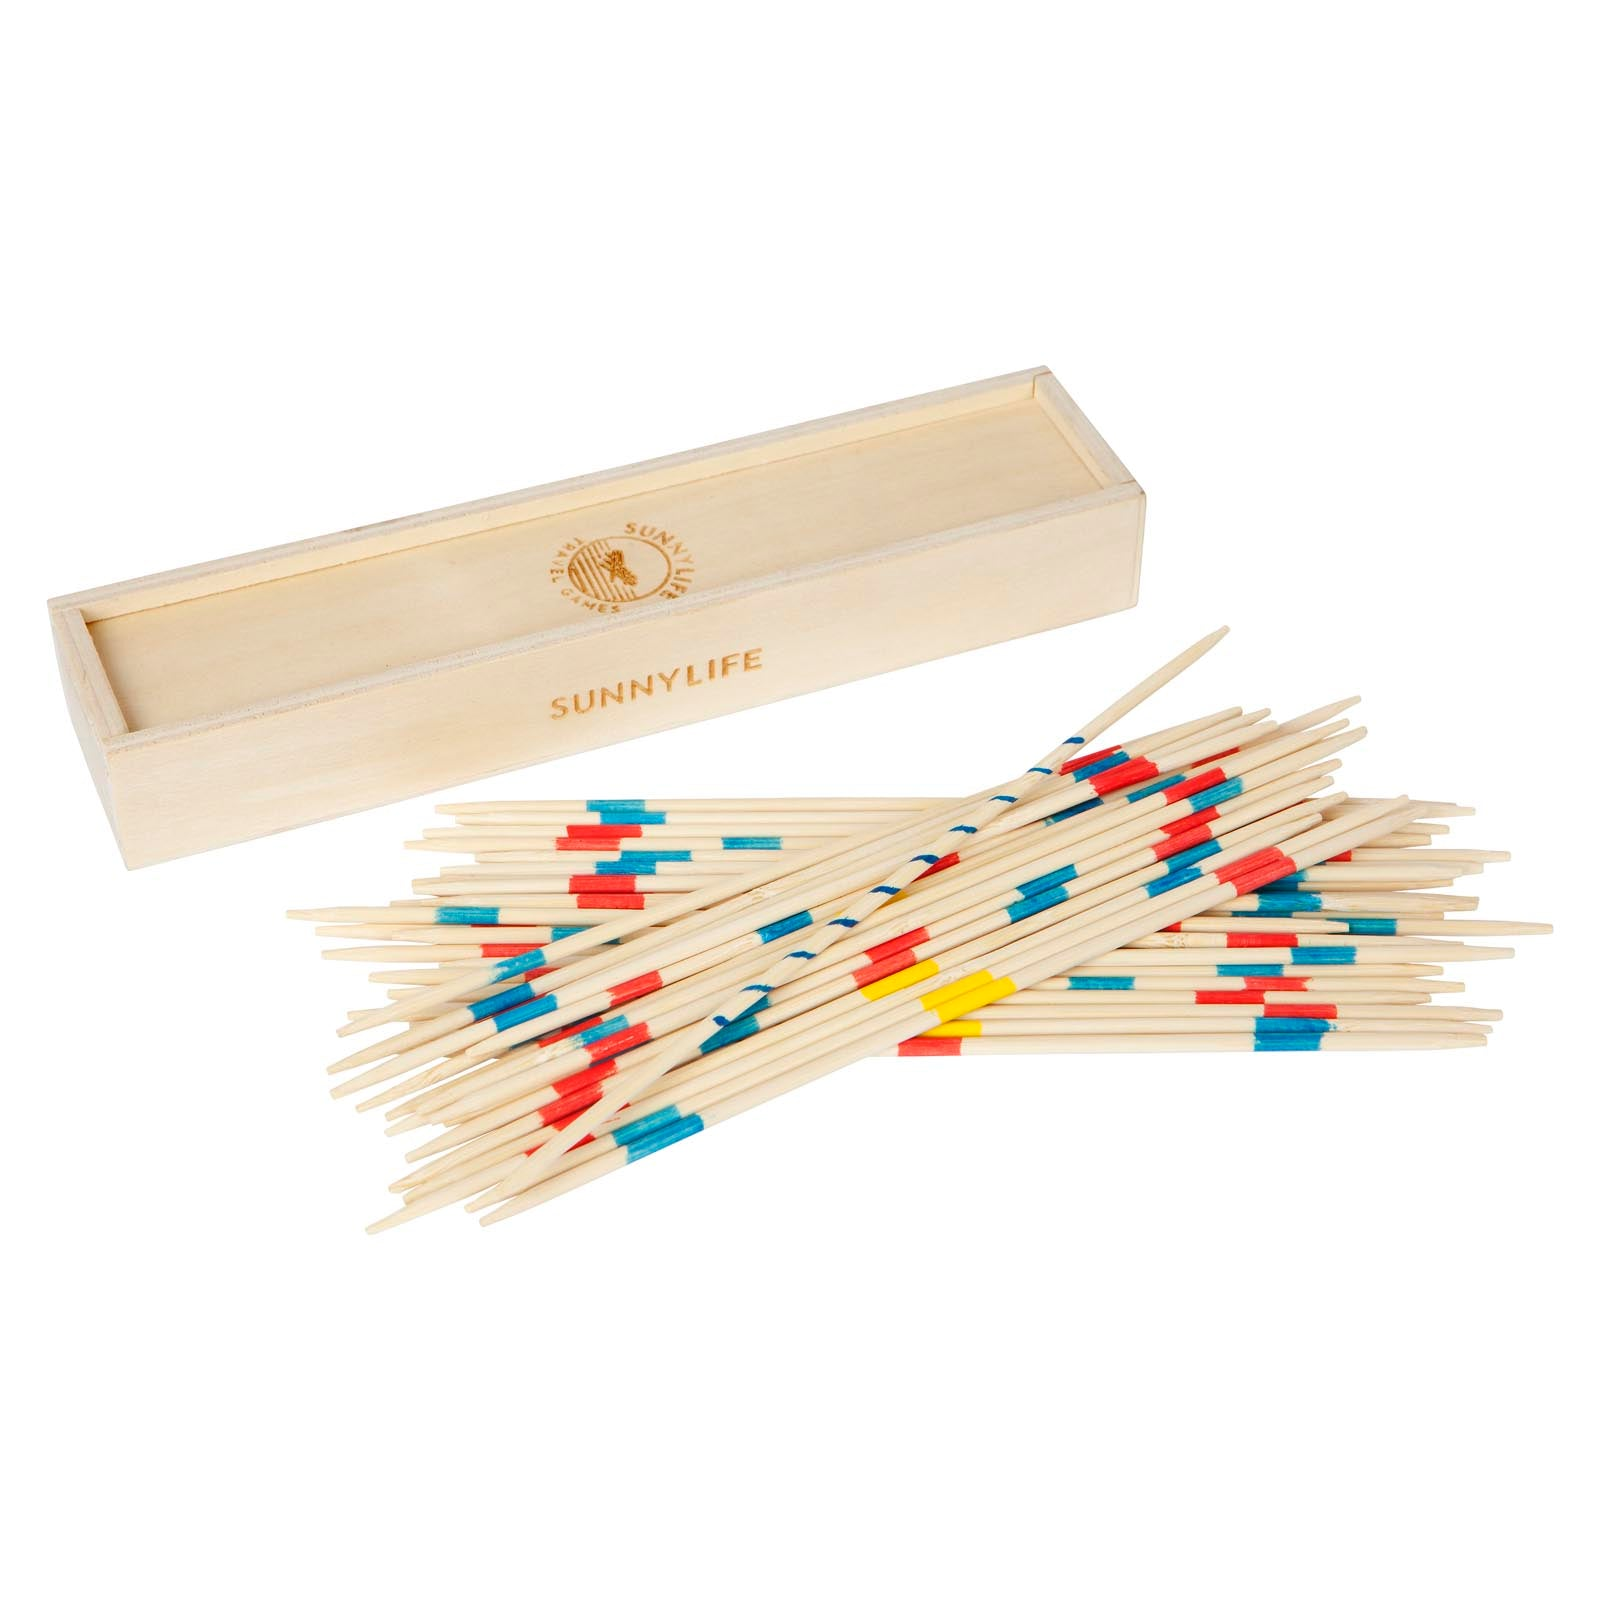 SunnyLife Travel Pick Up Sticks Malibu